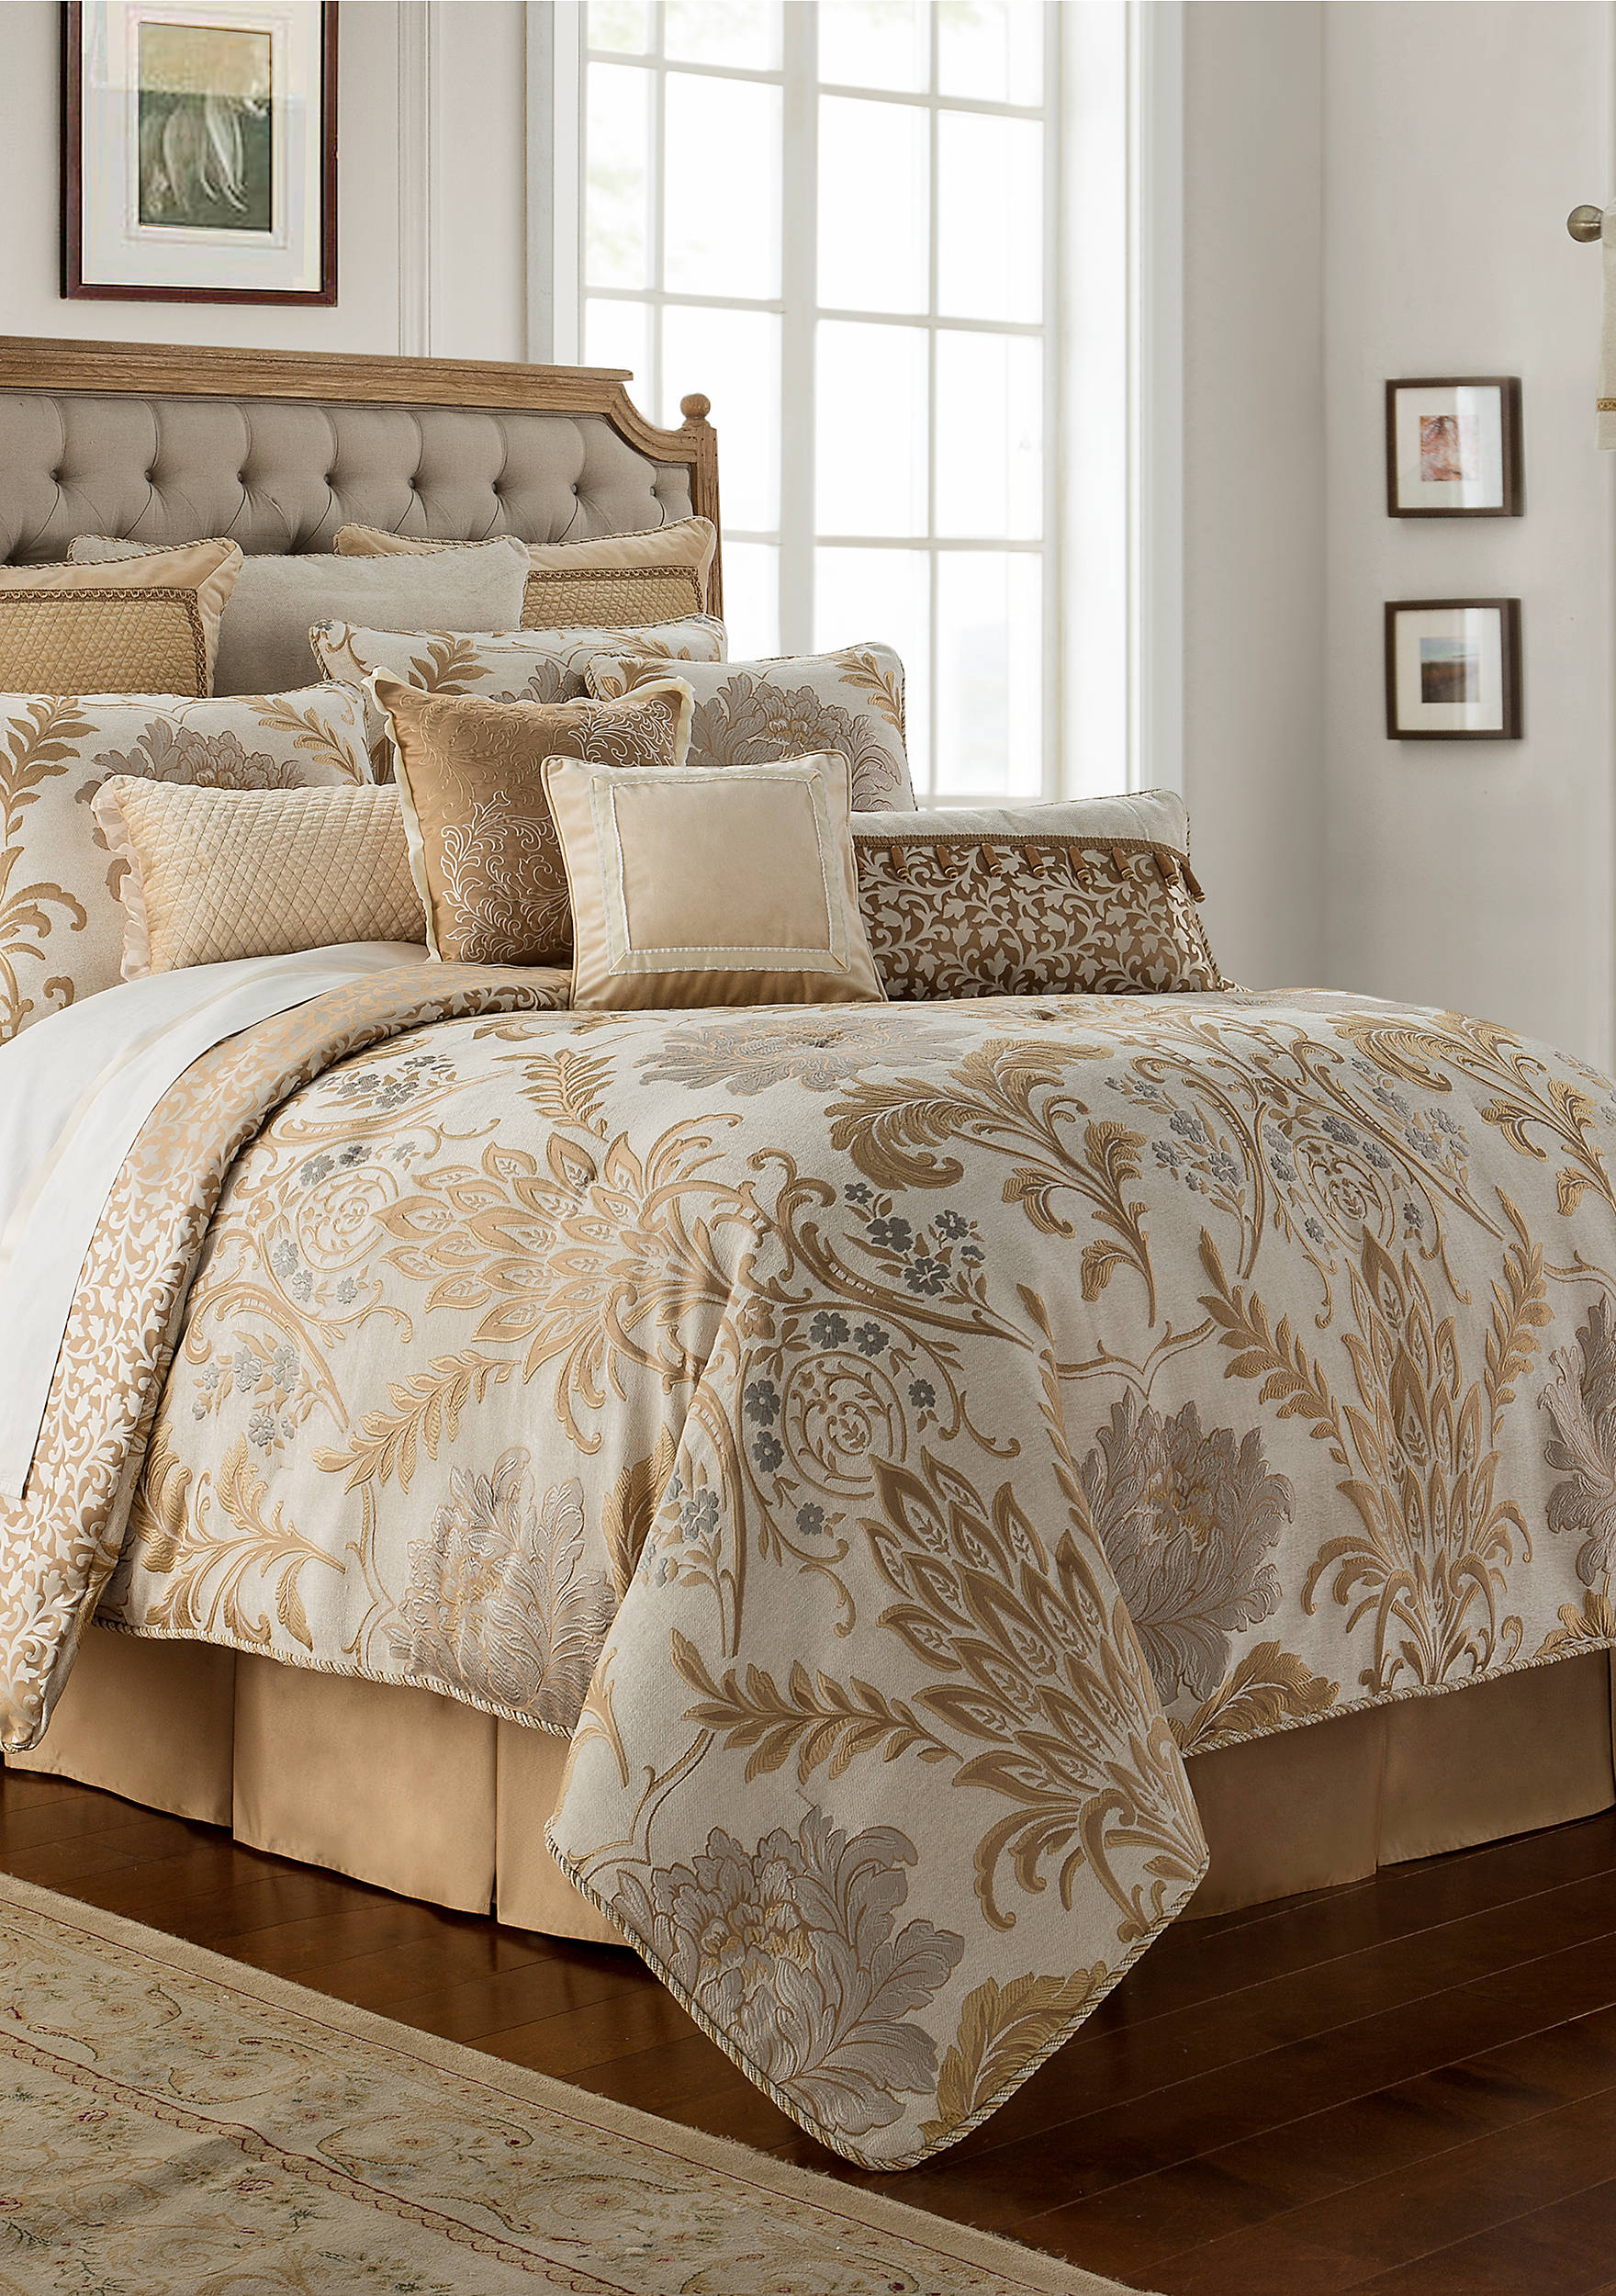 images size detail minnie belk copeland bedroom queen full set waterford comforter mouse